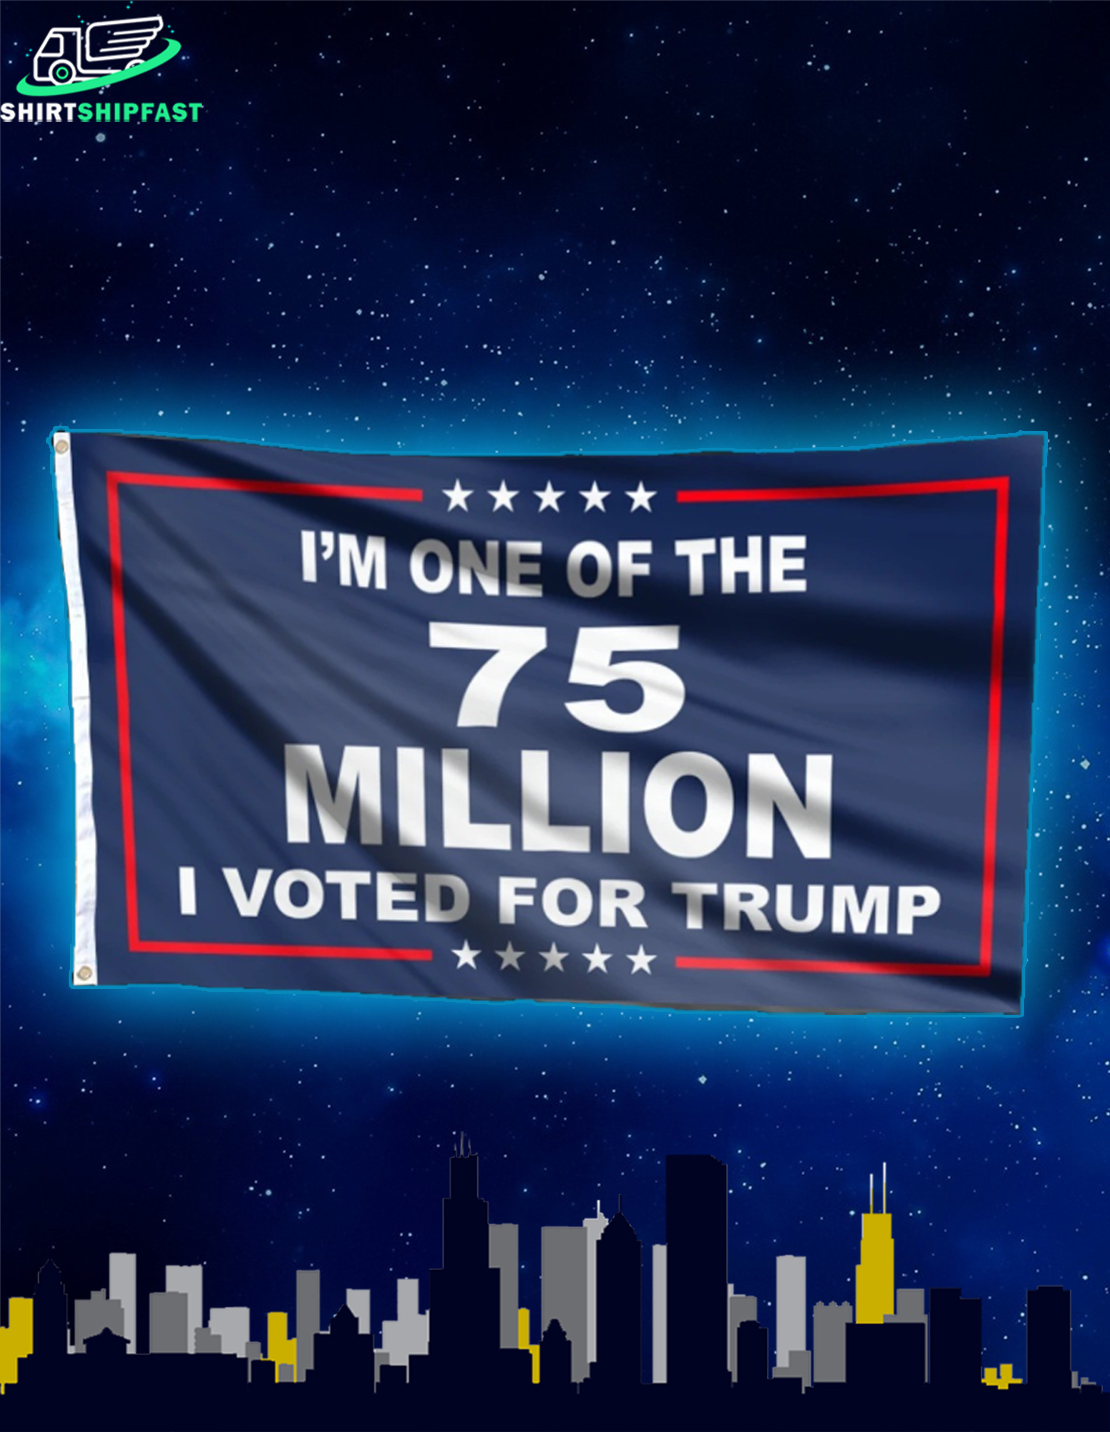 I'm one of the 75 million Trump flag - Picture 2